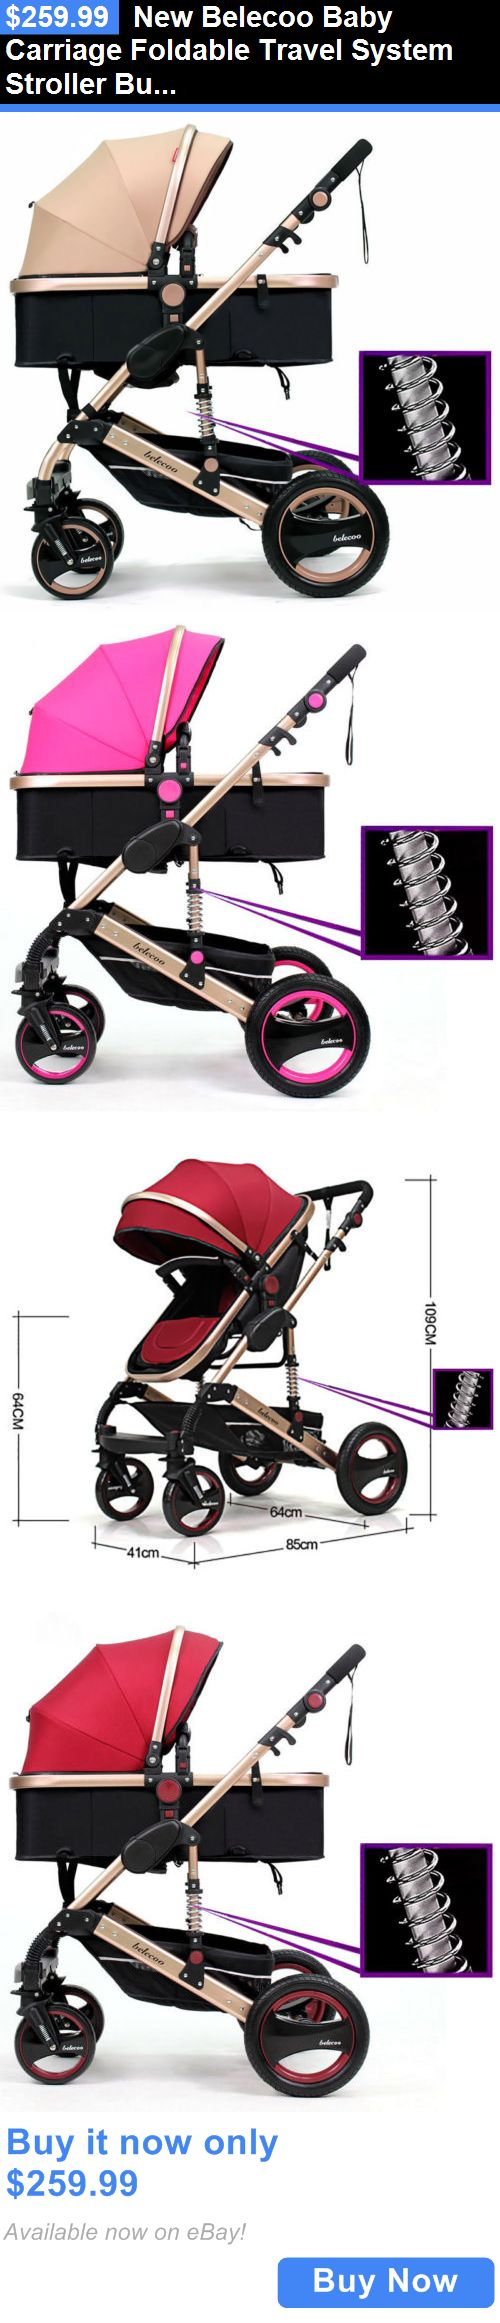 Baby: New Belecoo Baby Carriage Foldable Travel System Stroller Buggy Pushchair Pram BUY IT NOW ONLY: $259.99